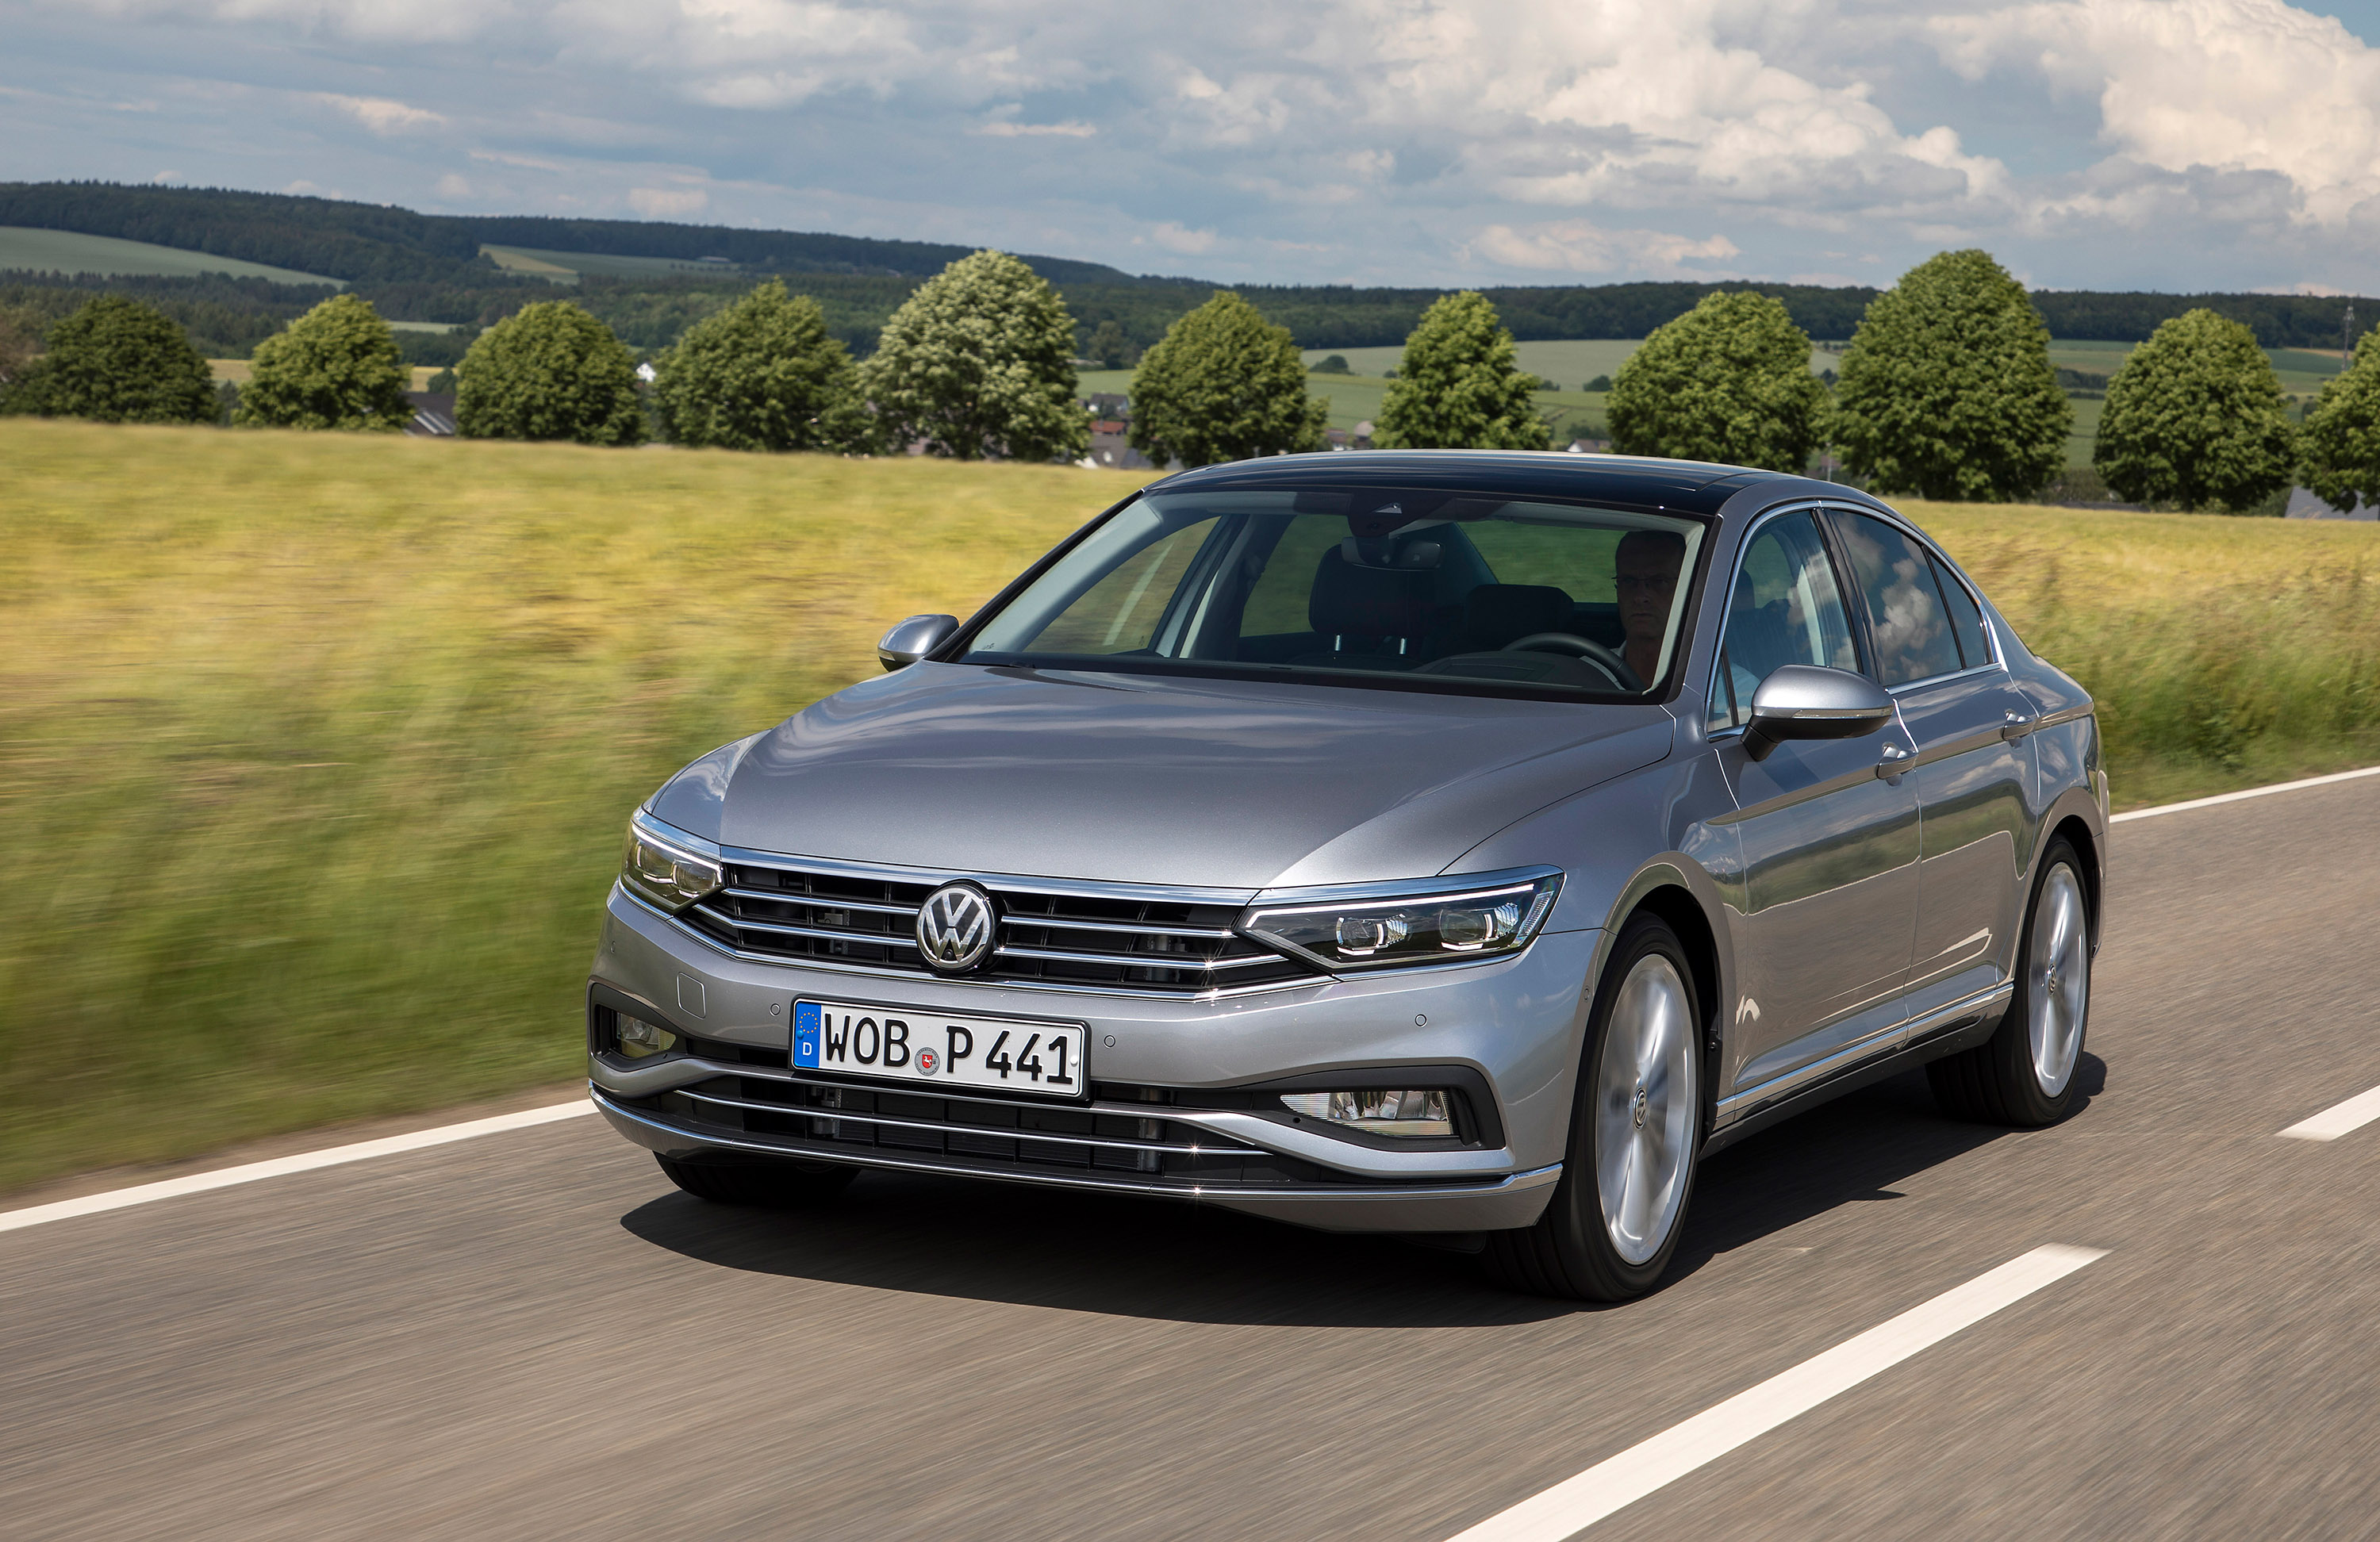 Volkswagen Passat Specifications & Prices | carwow